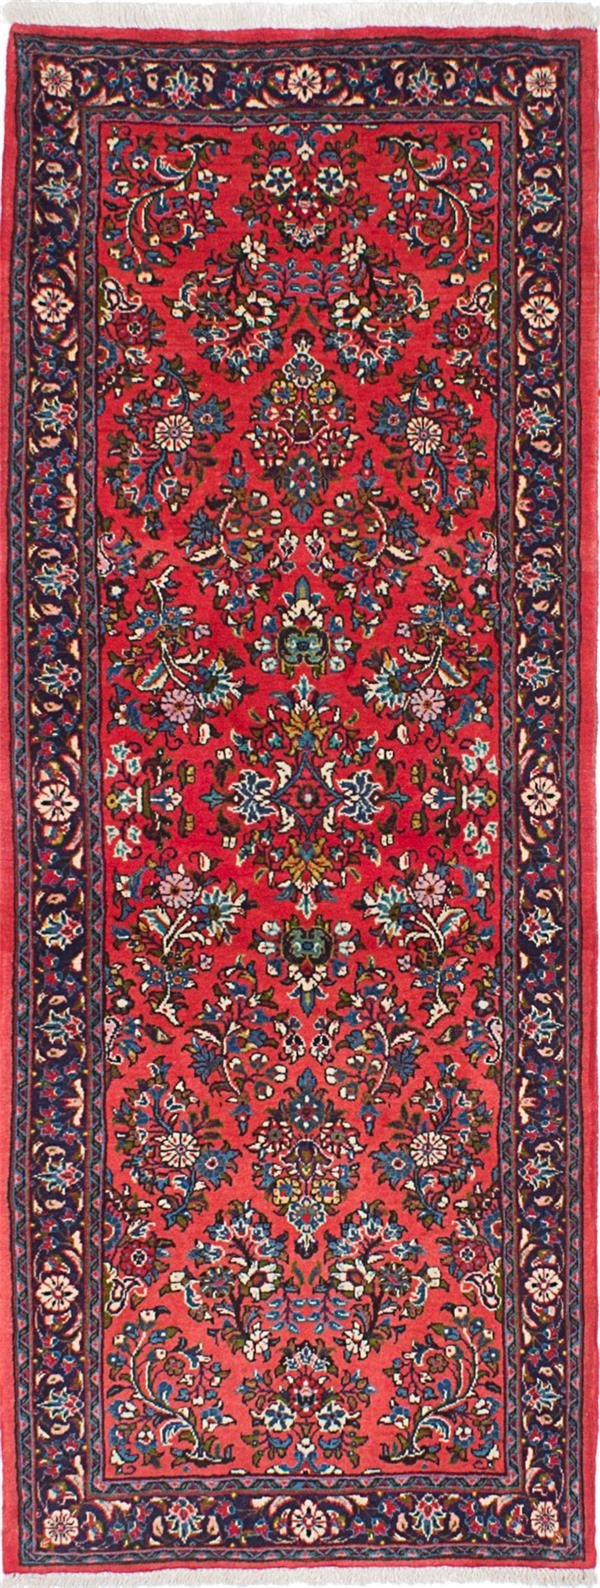 304 Best Rugs Images On Pinterest Inside Red Wool Rugs (Image 1 of 15)